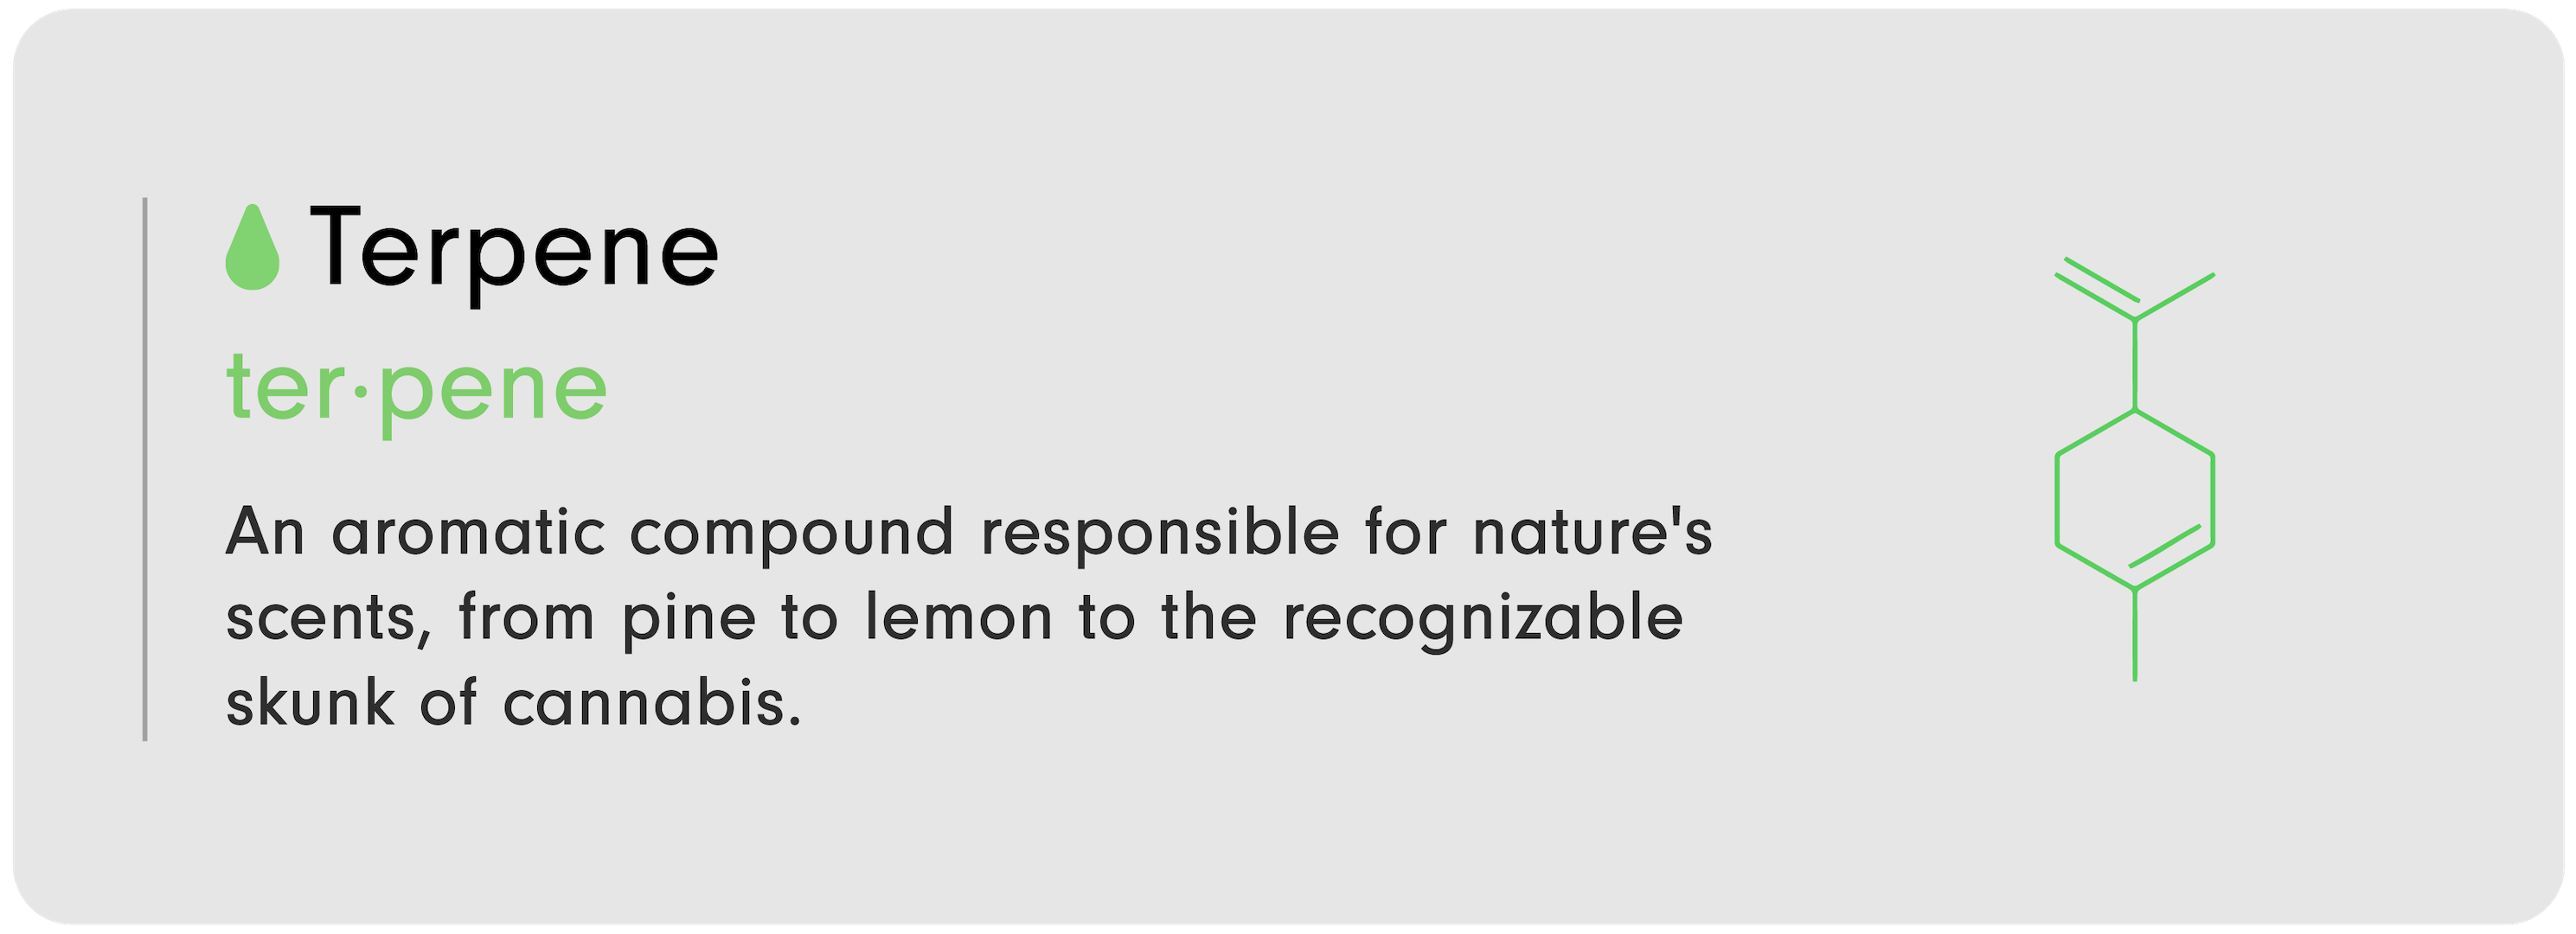 """C-D 101 infographic by LEVO that reads, """"Terpene: An aromatic compound responsible for nature's scents, from pine to lemon to the recognizable skunk of c----bis."""""""